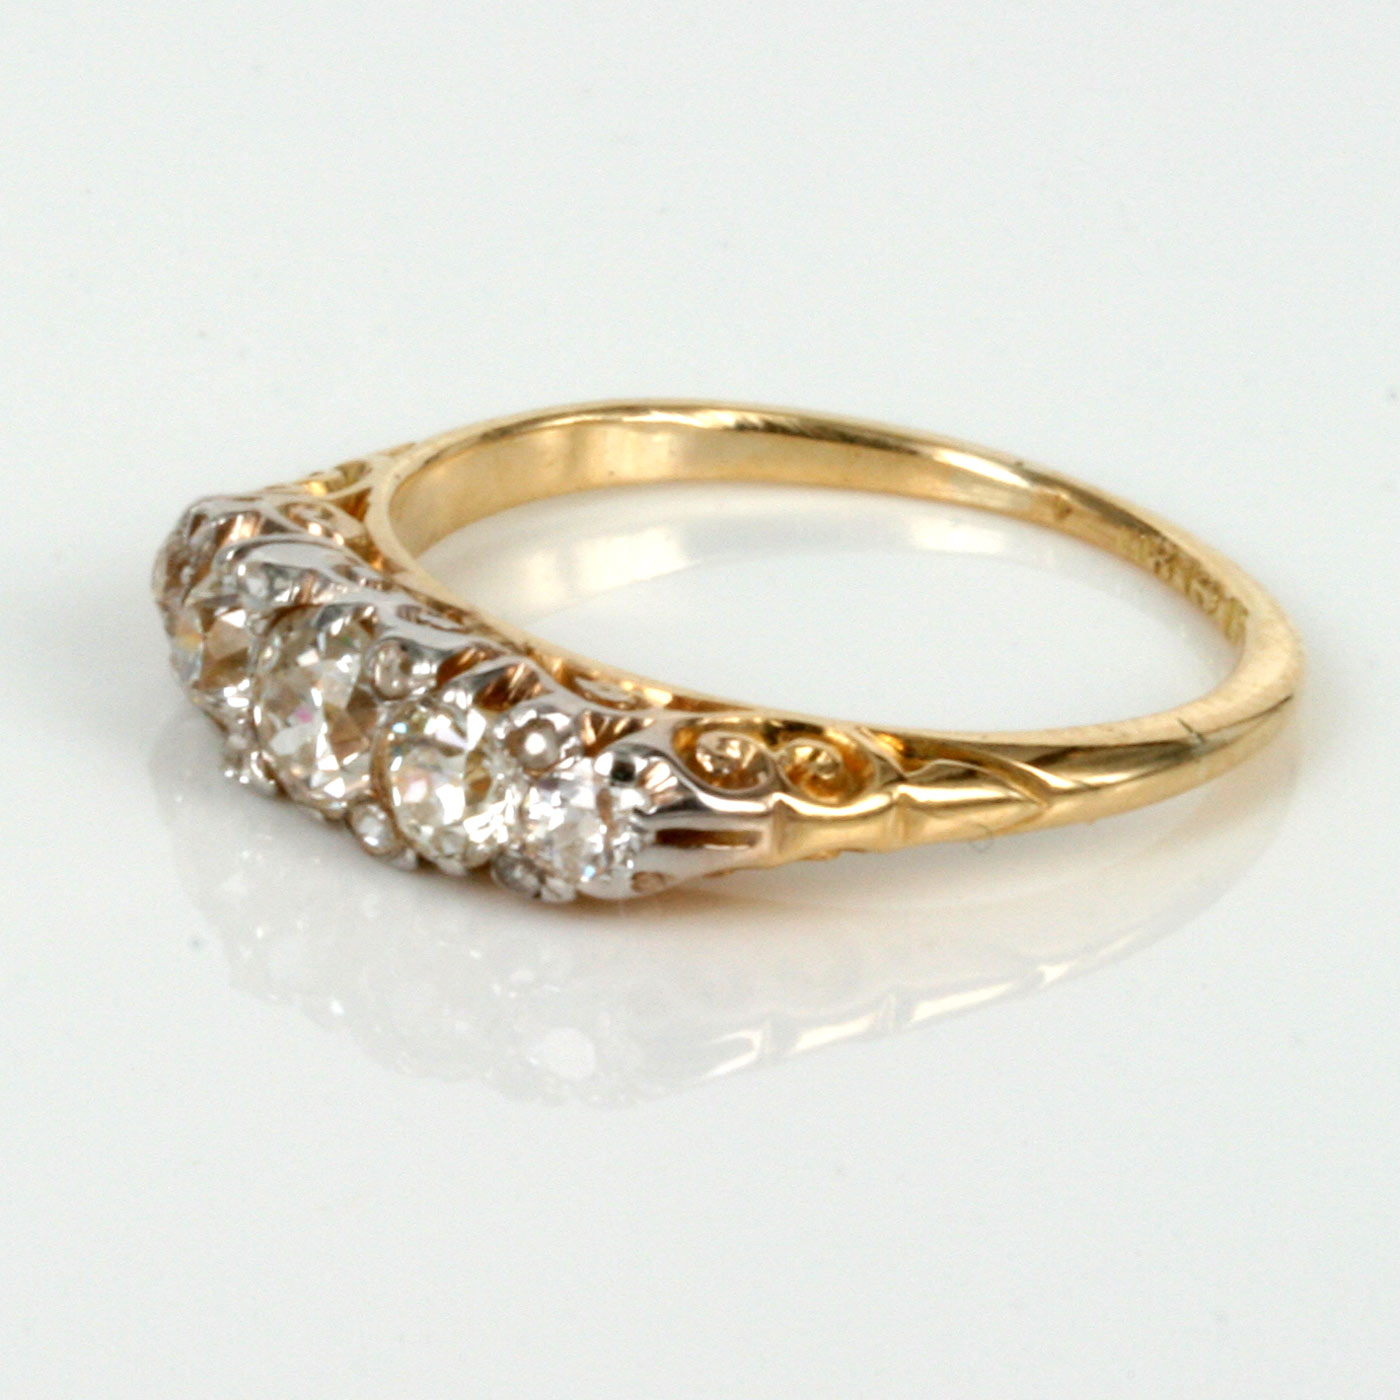 Buy Antique Diamond Engagement Ring Made In 1905 Sold Items